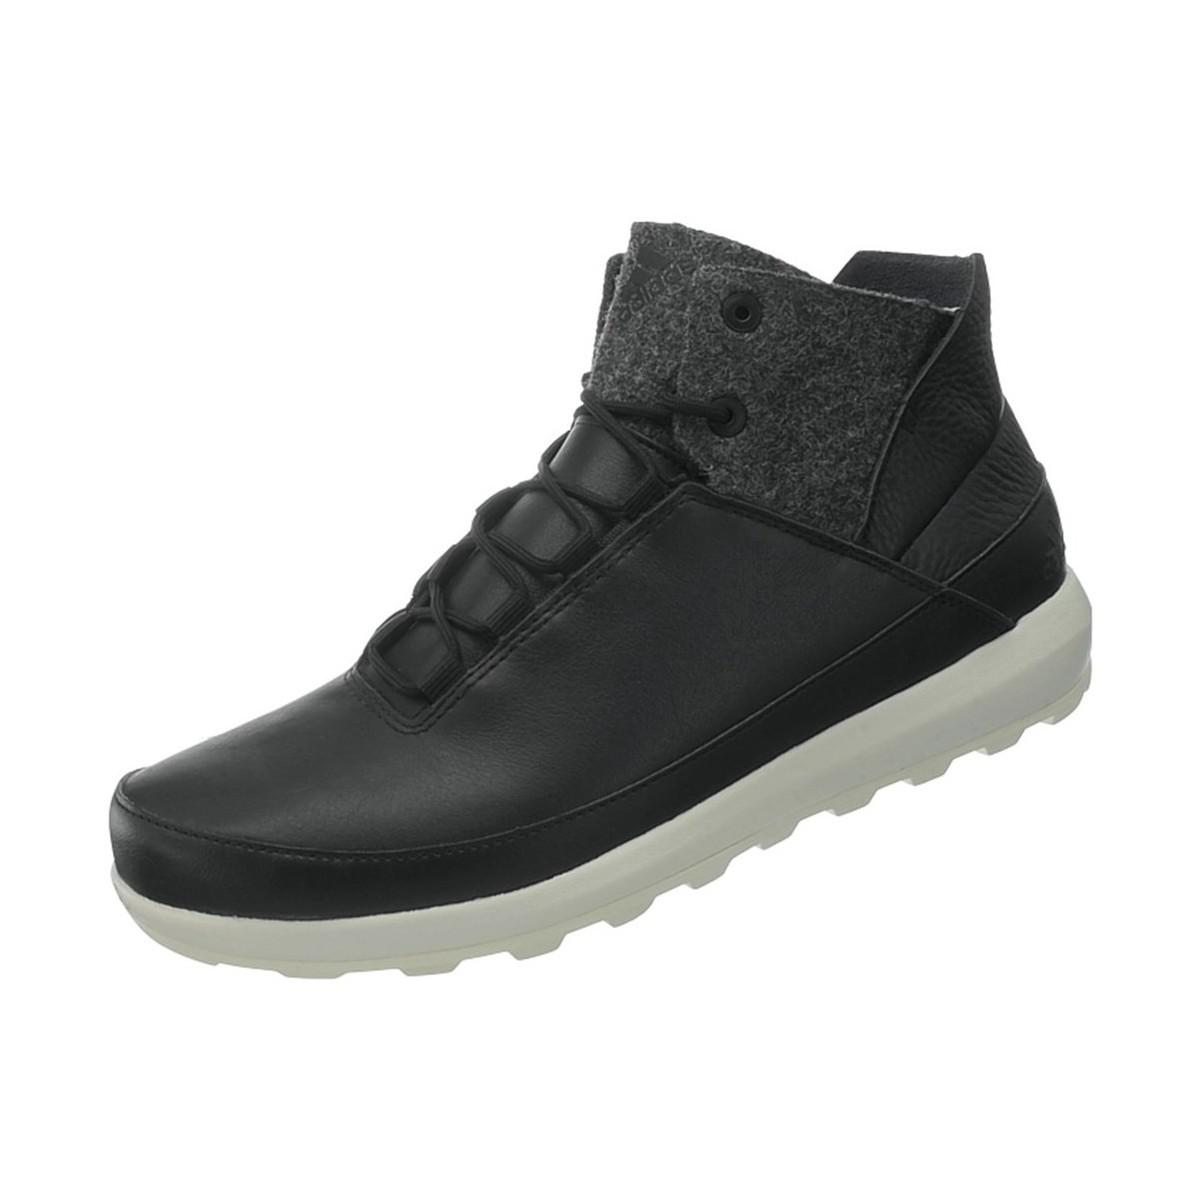 Men Boots Discover effortless offduty luxe in Timberlands casual mens boots From rugged to refined the collection has your weekend style covered whether youre hiking in the hills or heading out in the city